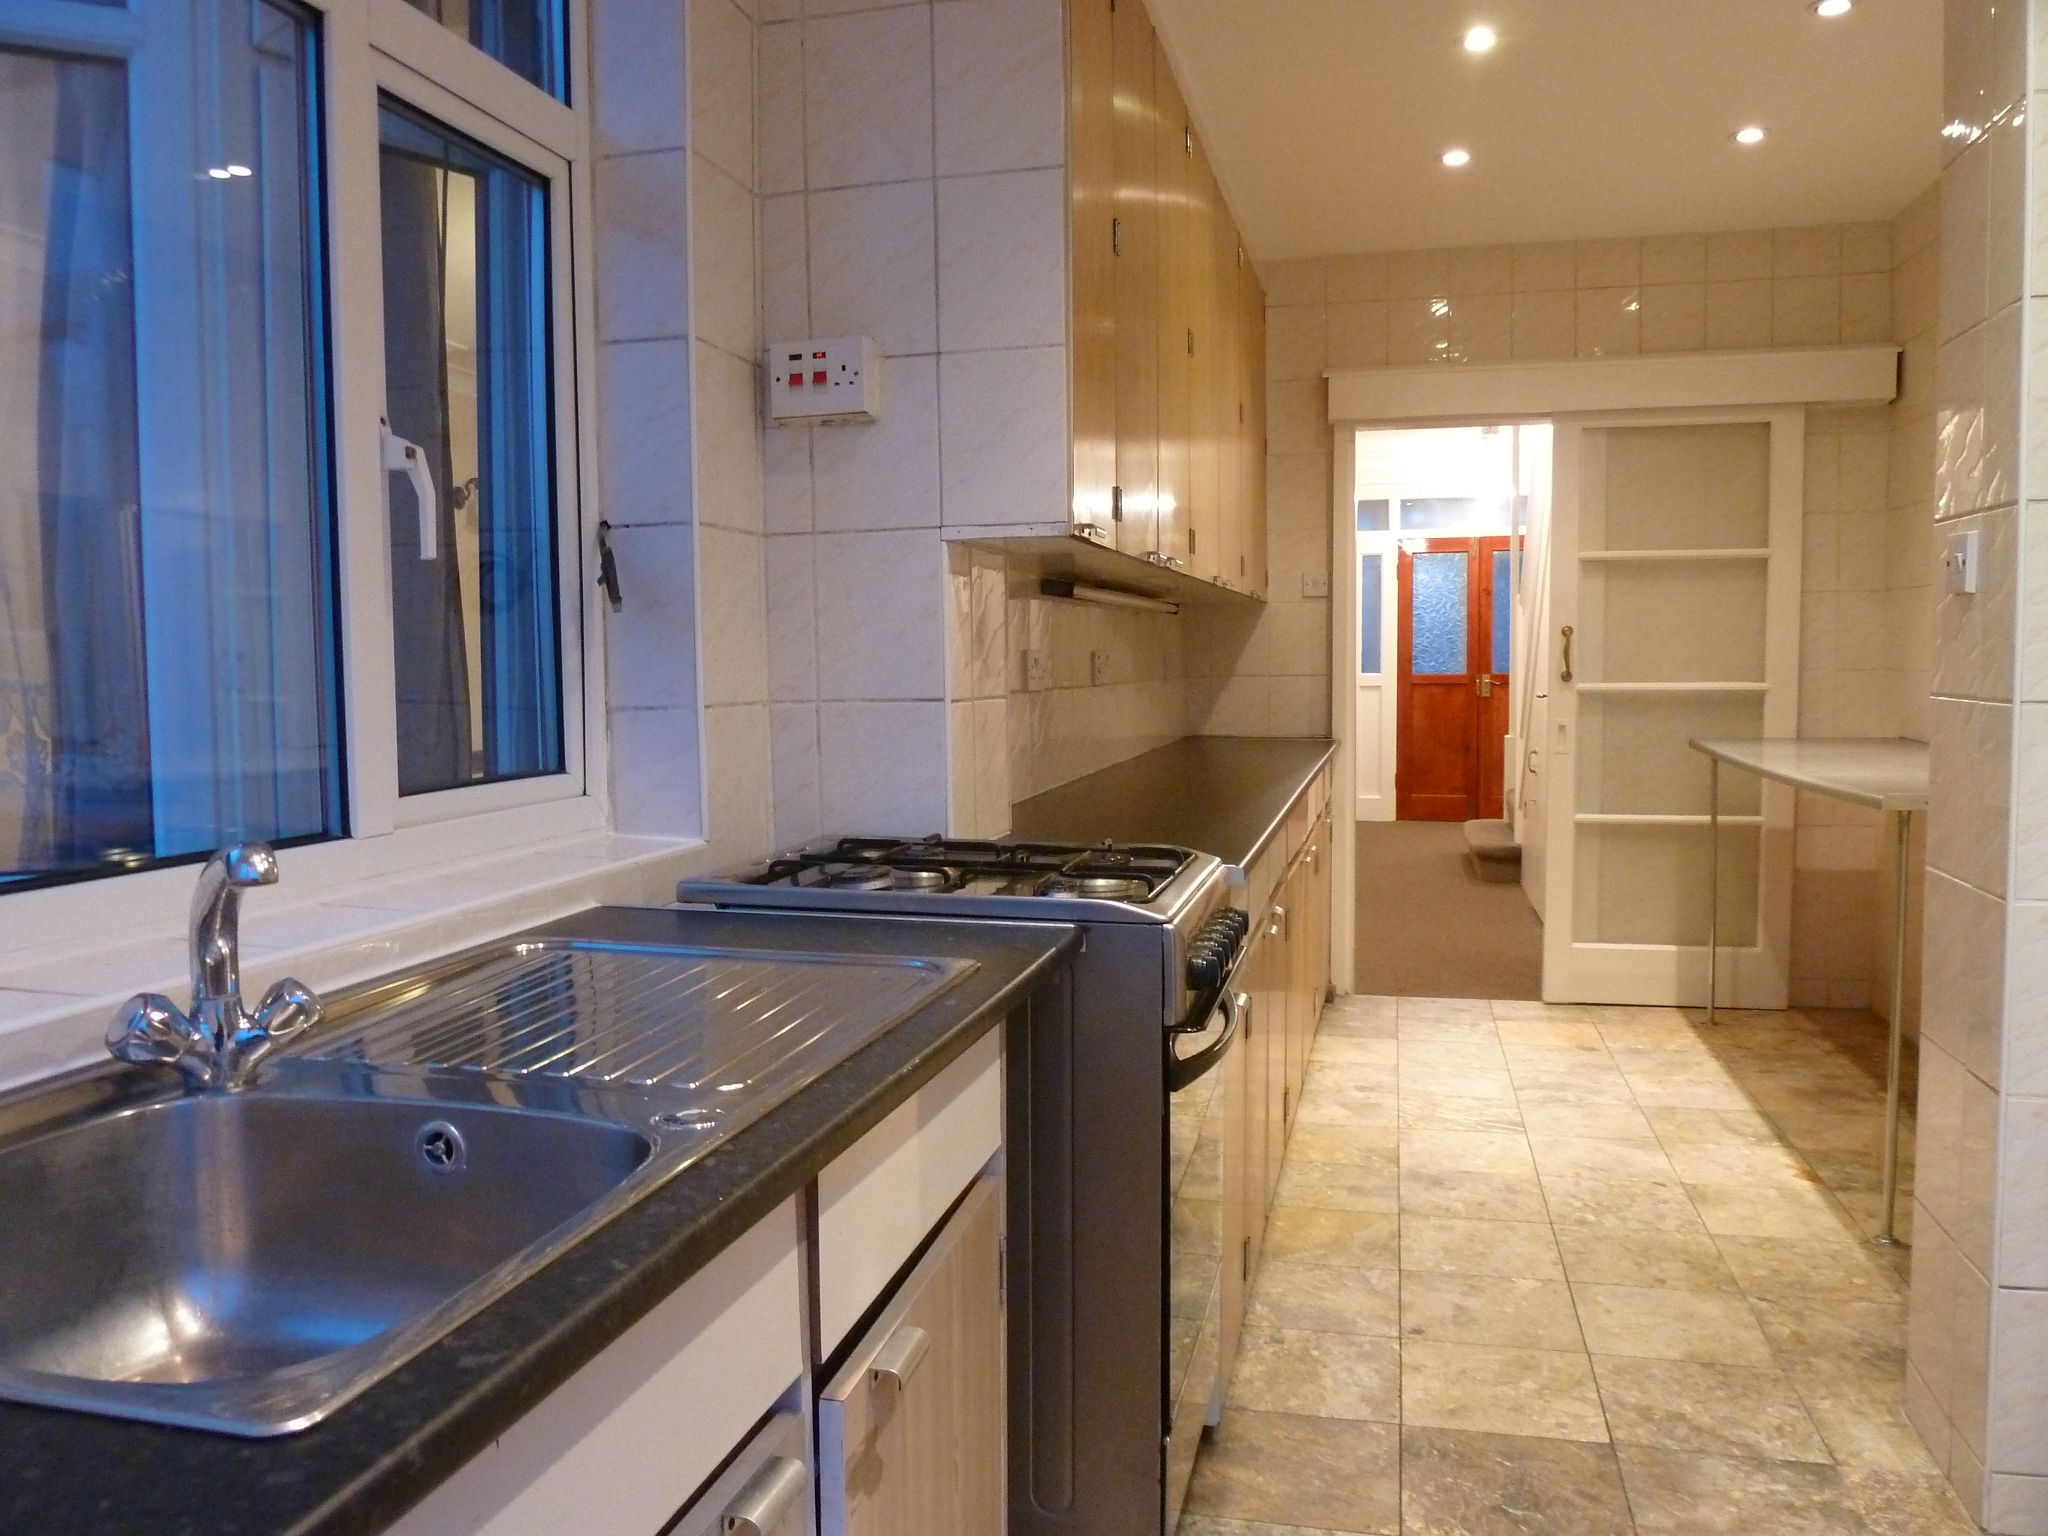 4 bedroom semi-detached house To Let in London - Kitchen